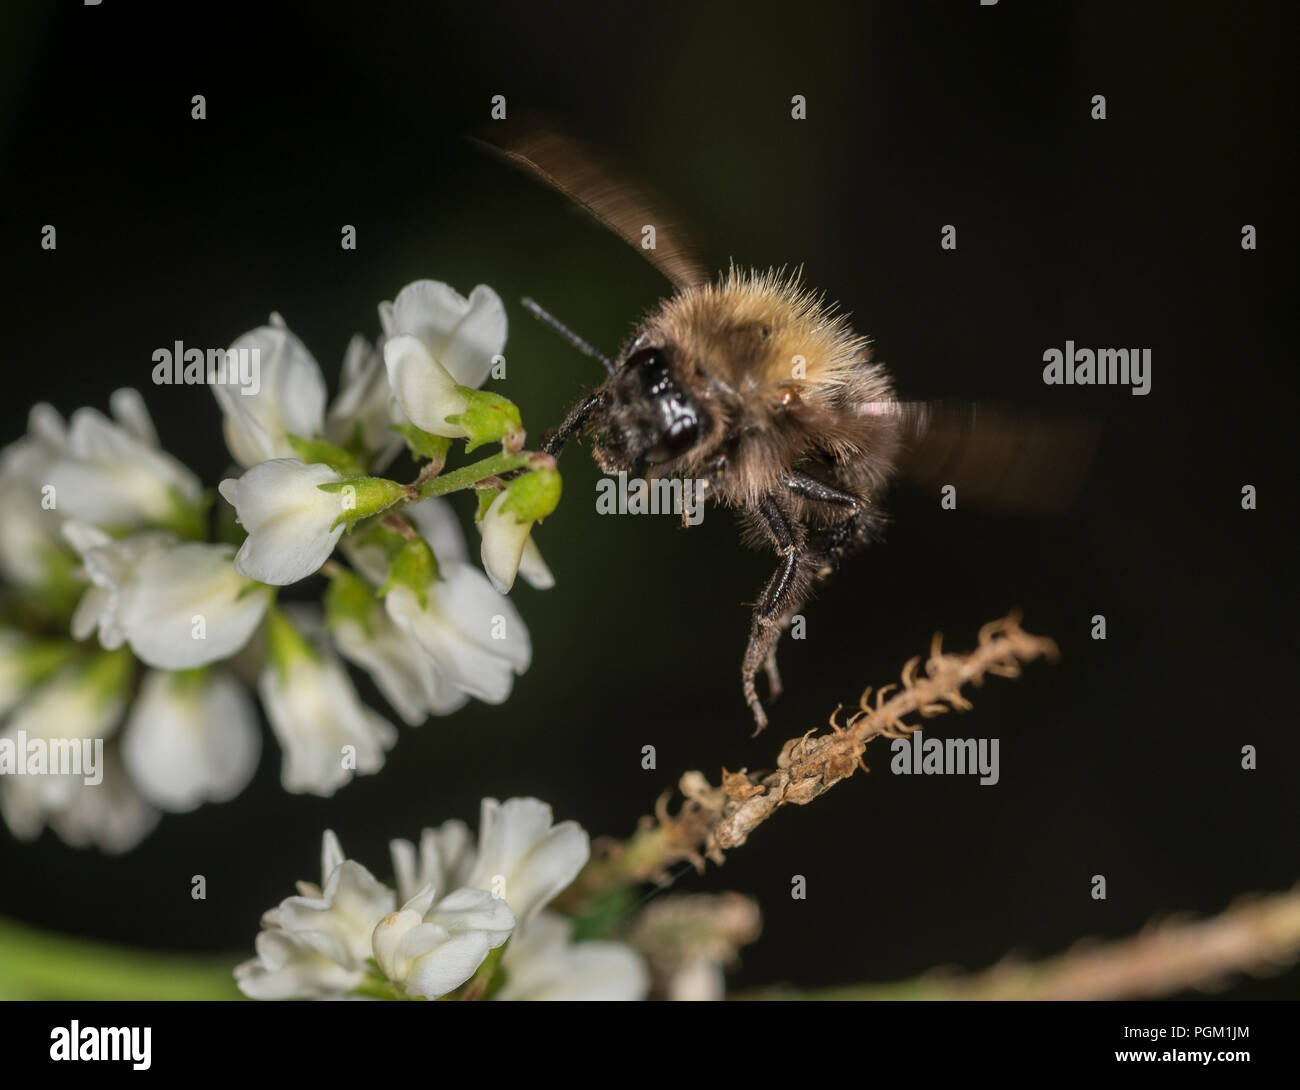 Bumble bee gathering honey from a flower - Stock Image